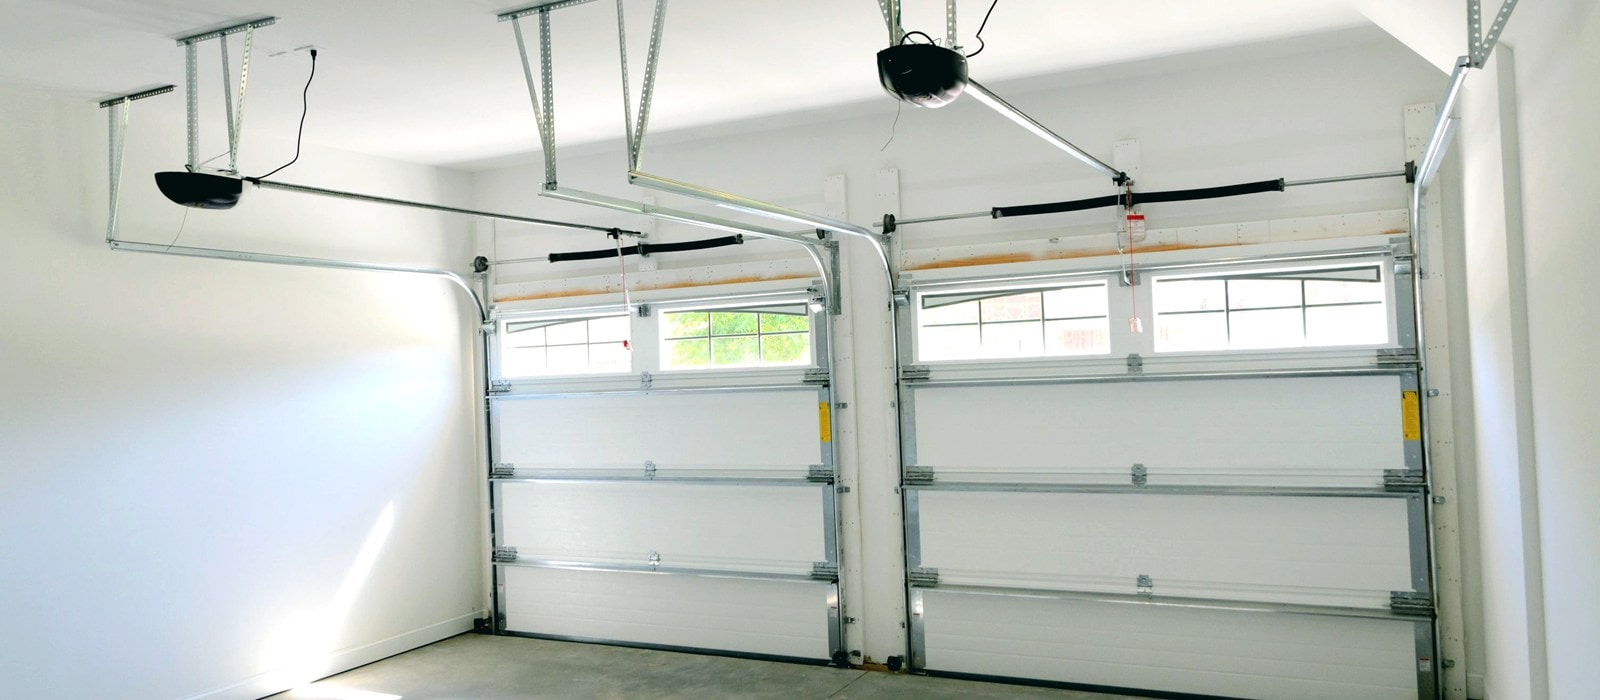 24 Hour  Garage Door Repair Service  Emergency Services. Organize Your Garage. Garage Door Garaga. Hickory Doors. Patio Doors With Sidelights. Pet Door For Garage Door. Replacement French Doors. Liftmaster 8500 Wall Mount Garage Door Opener. New Style Garage Doors